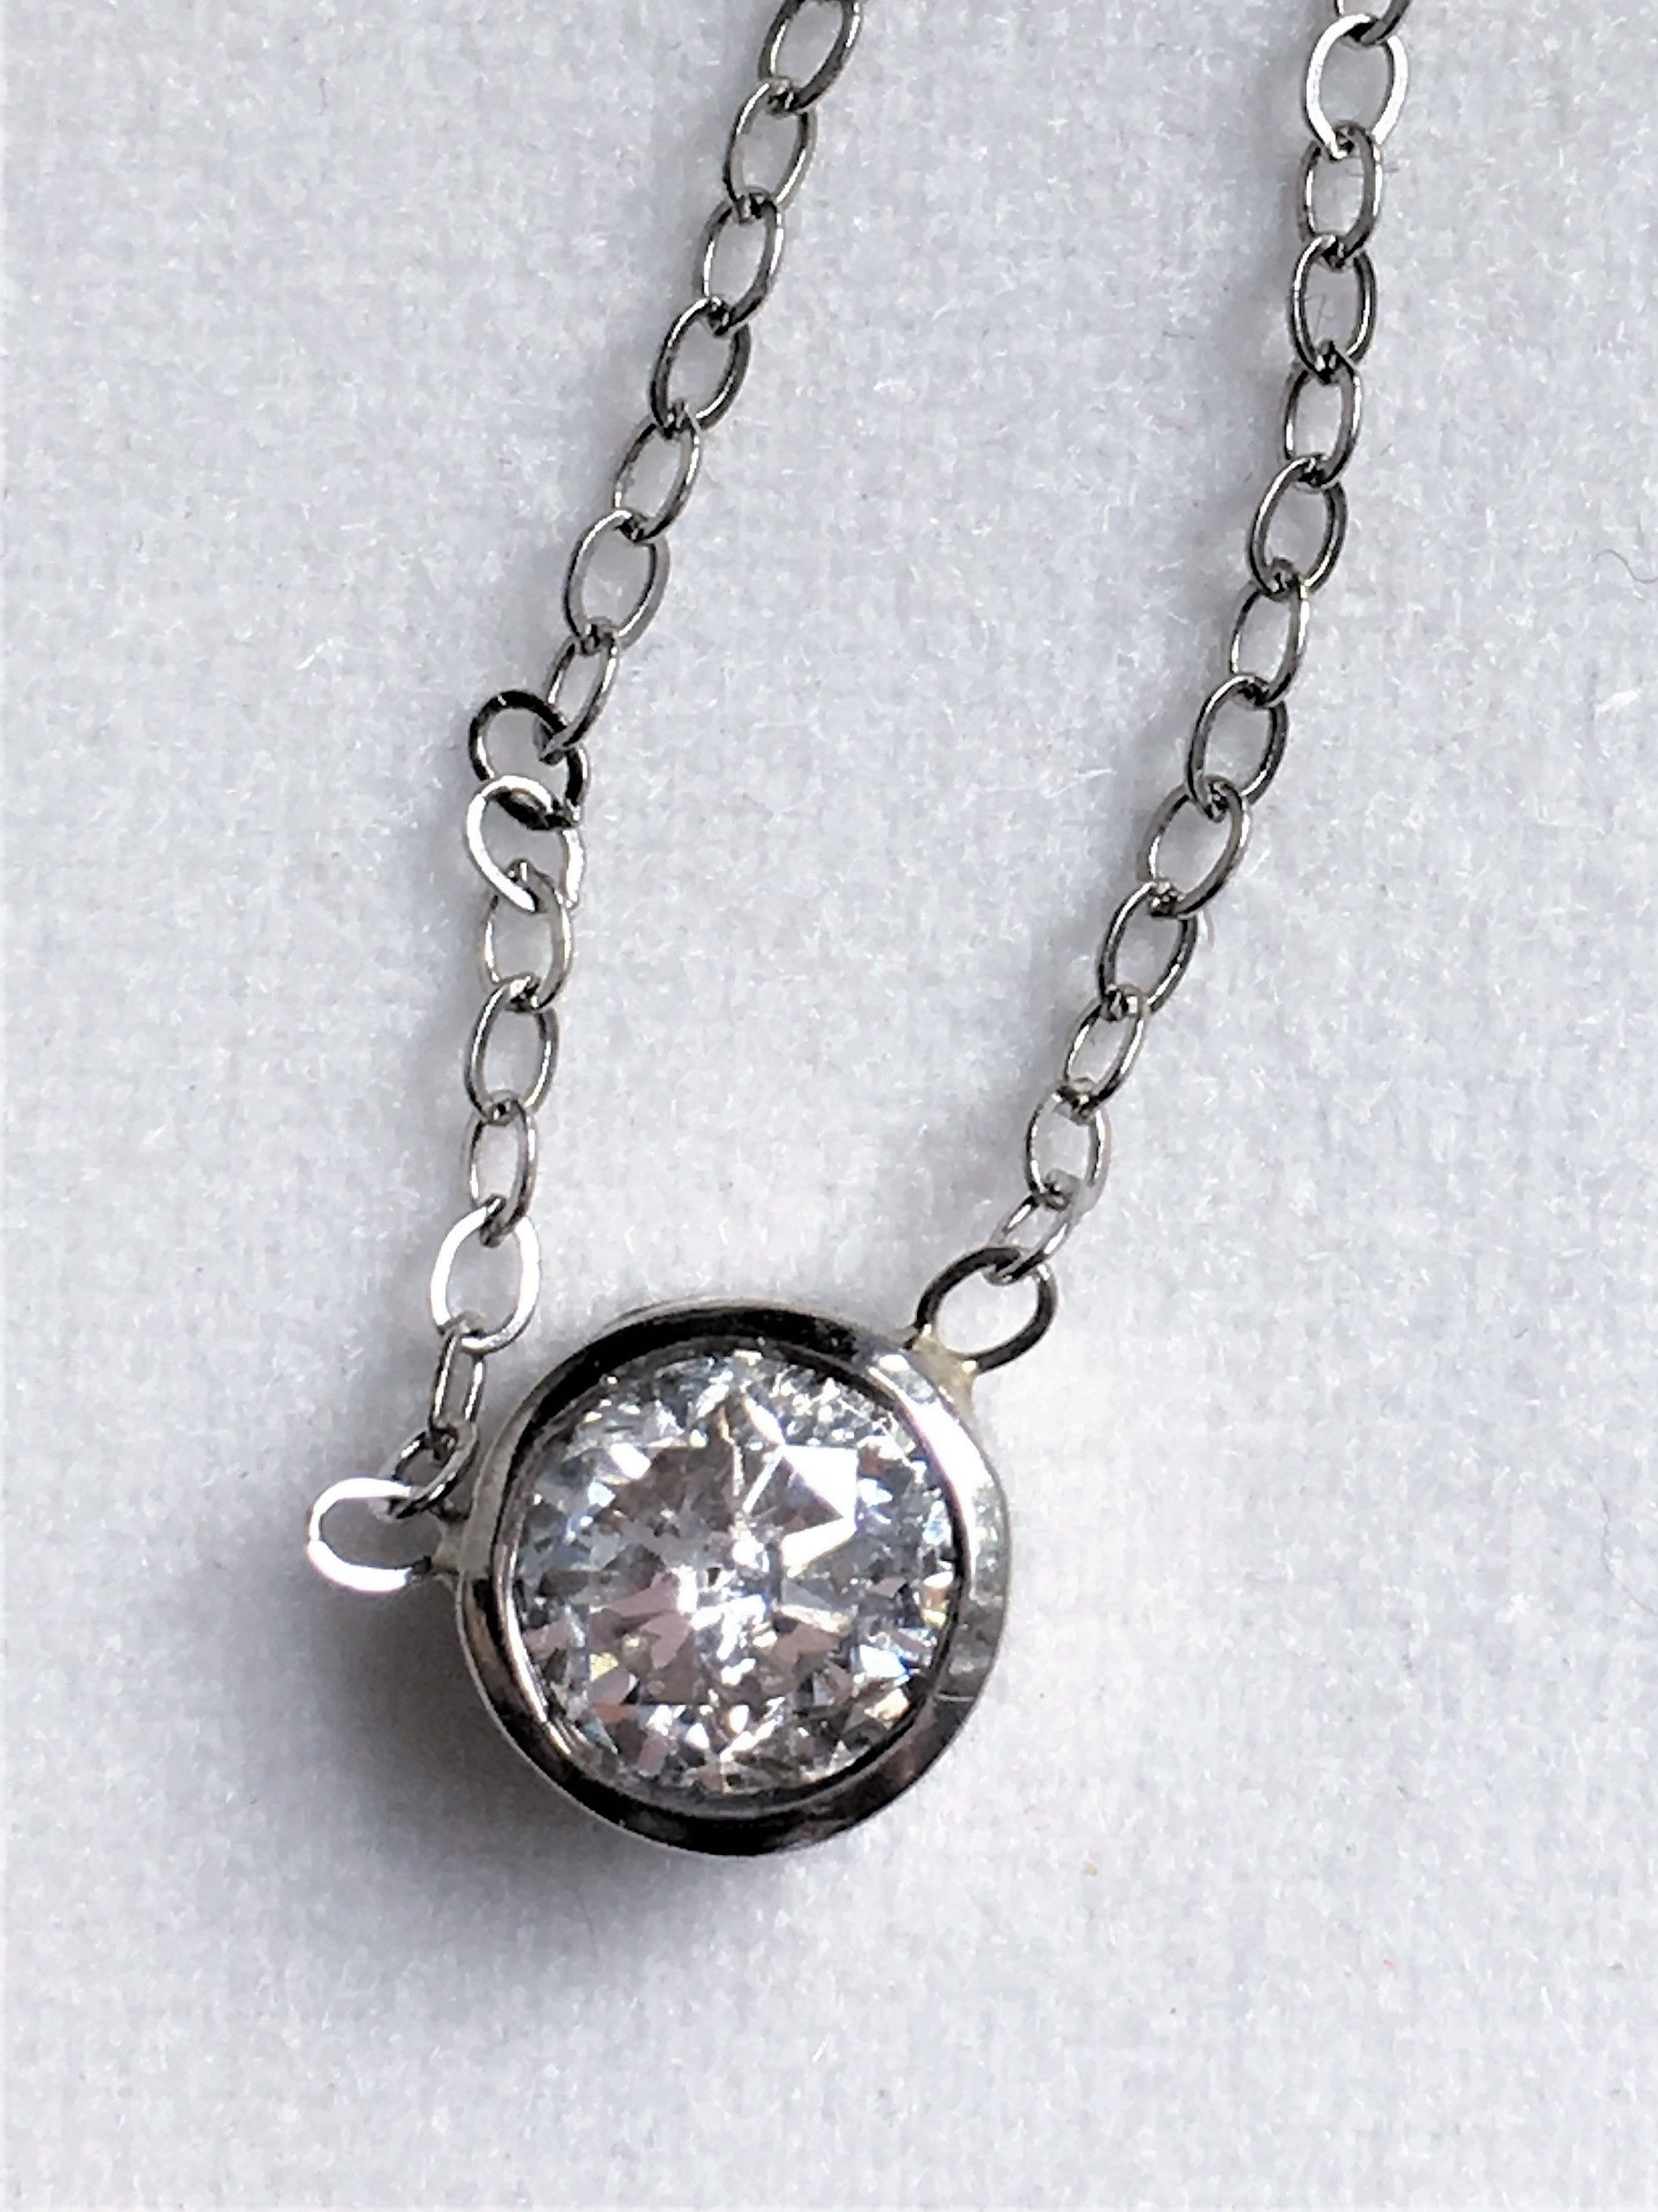 White gold bezel set diamond pendant on a